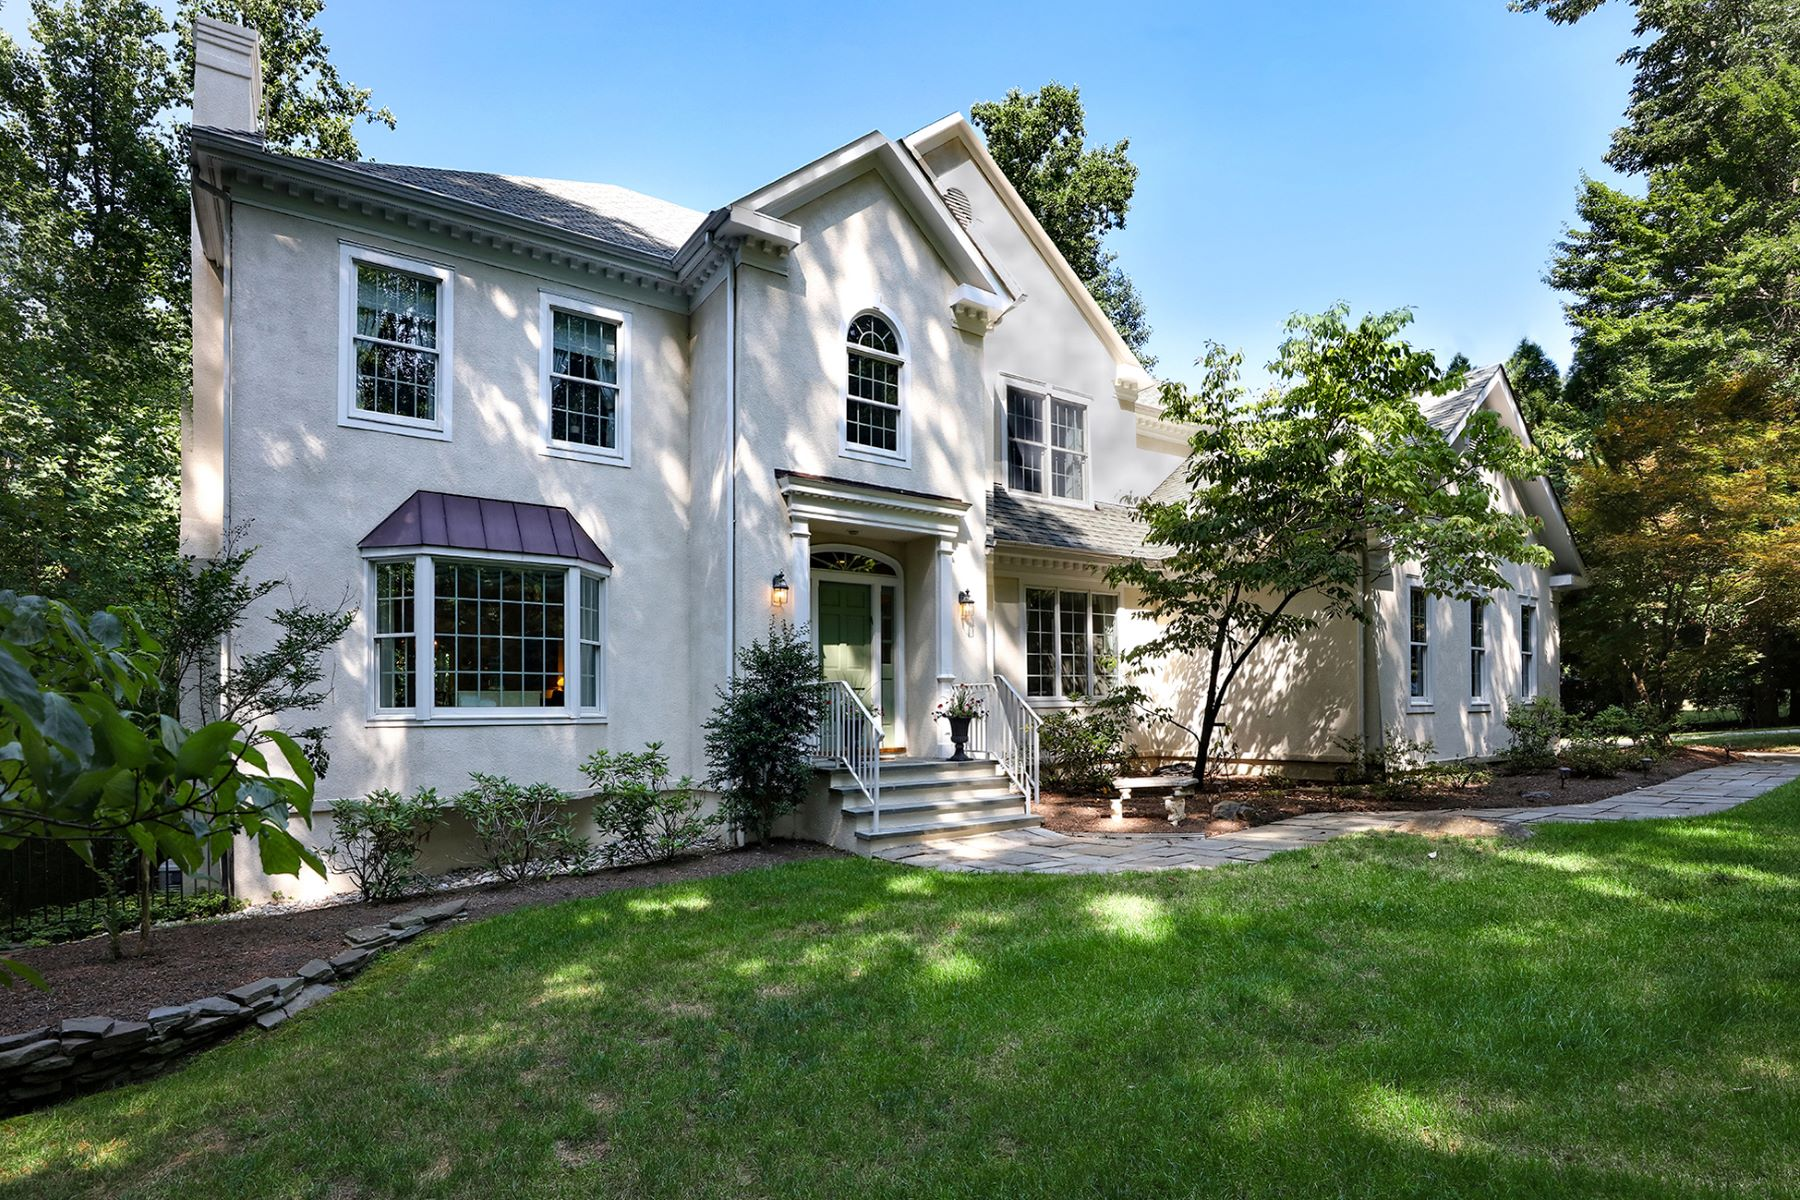 Single Family Home for Sale at Exquisitely Designed In The Preserve 176 Highland Terrace, Princeton, New Jersey 08540 United States